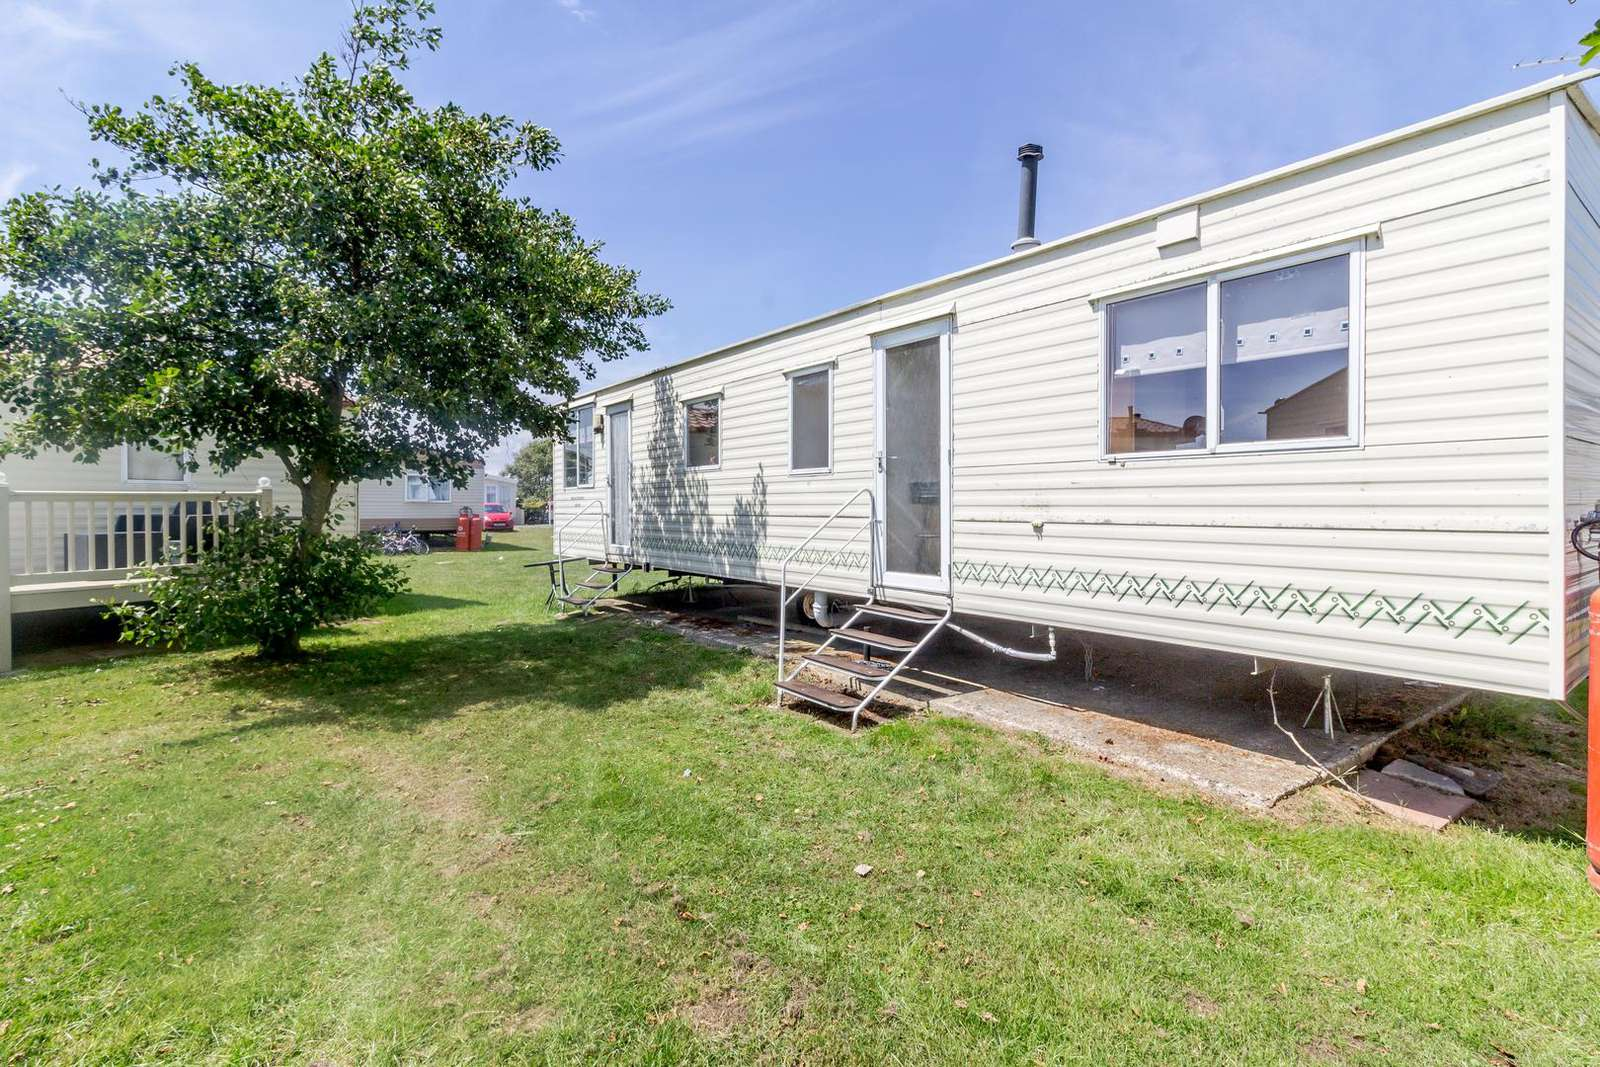 Stunning caravan situated on a great park